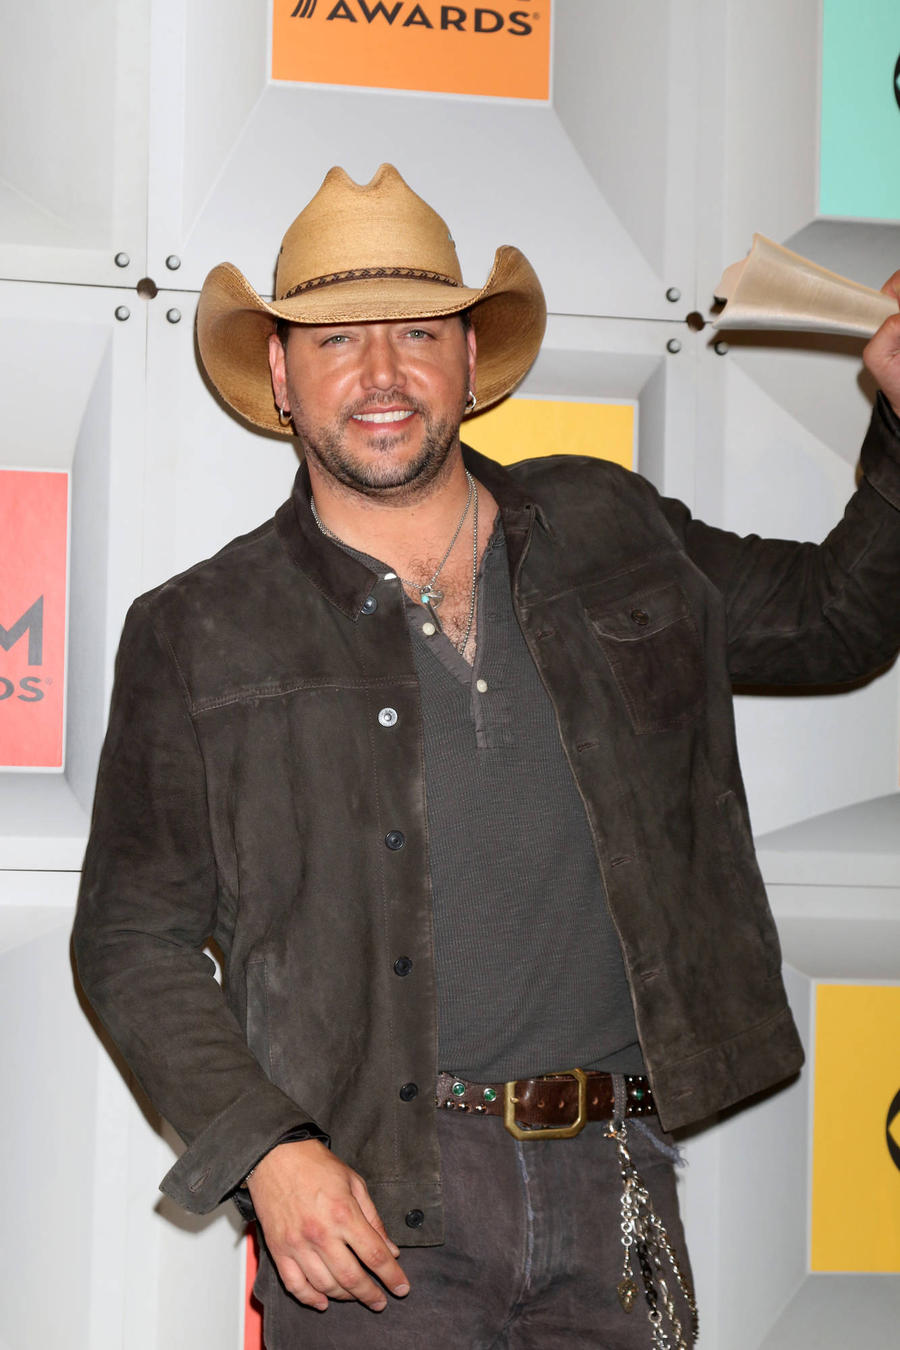 Latest Jason Aldean News And Archives Contactmusic Com